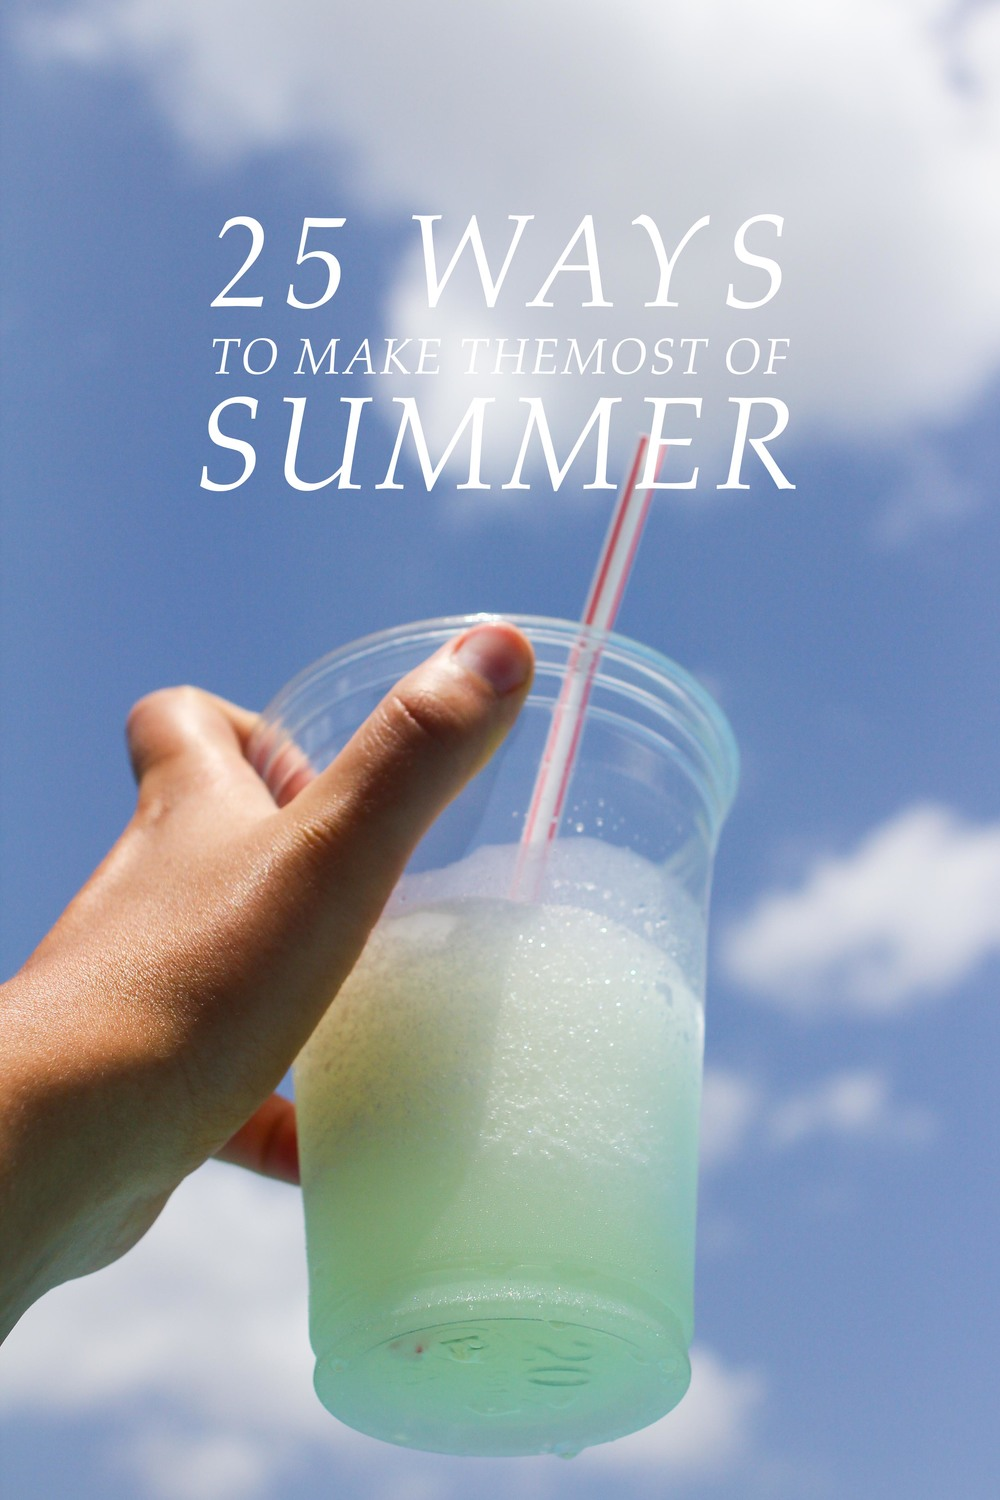 25 Ways to Make the Most of Summer | All the Delights